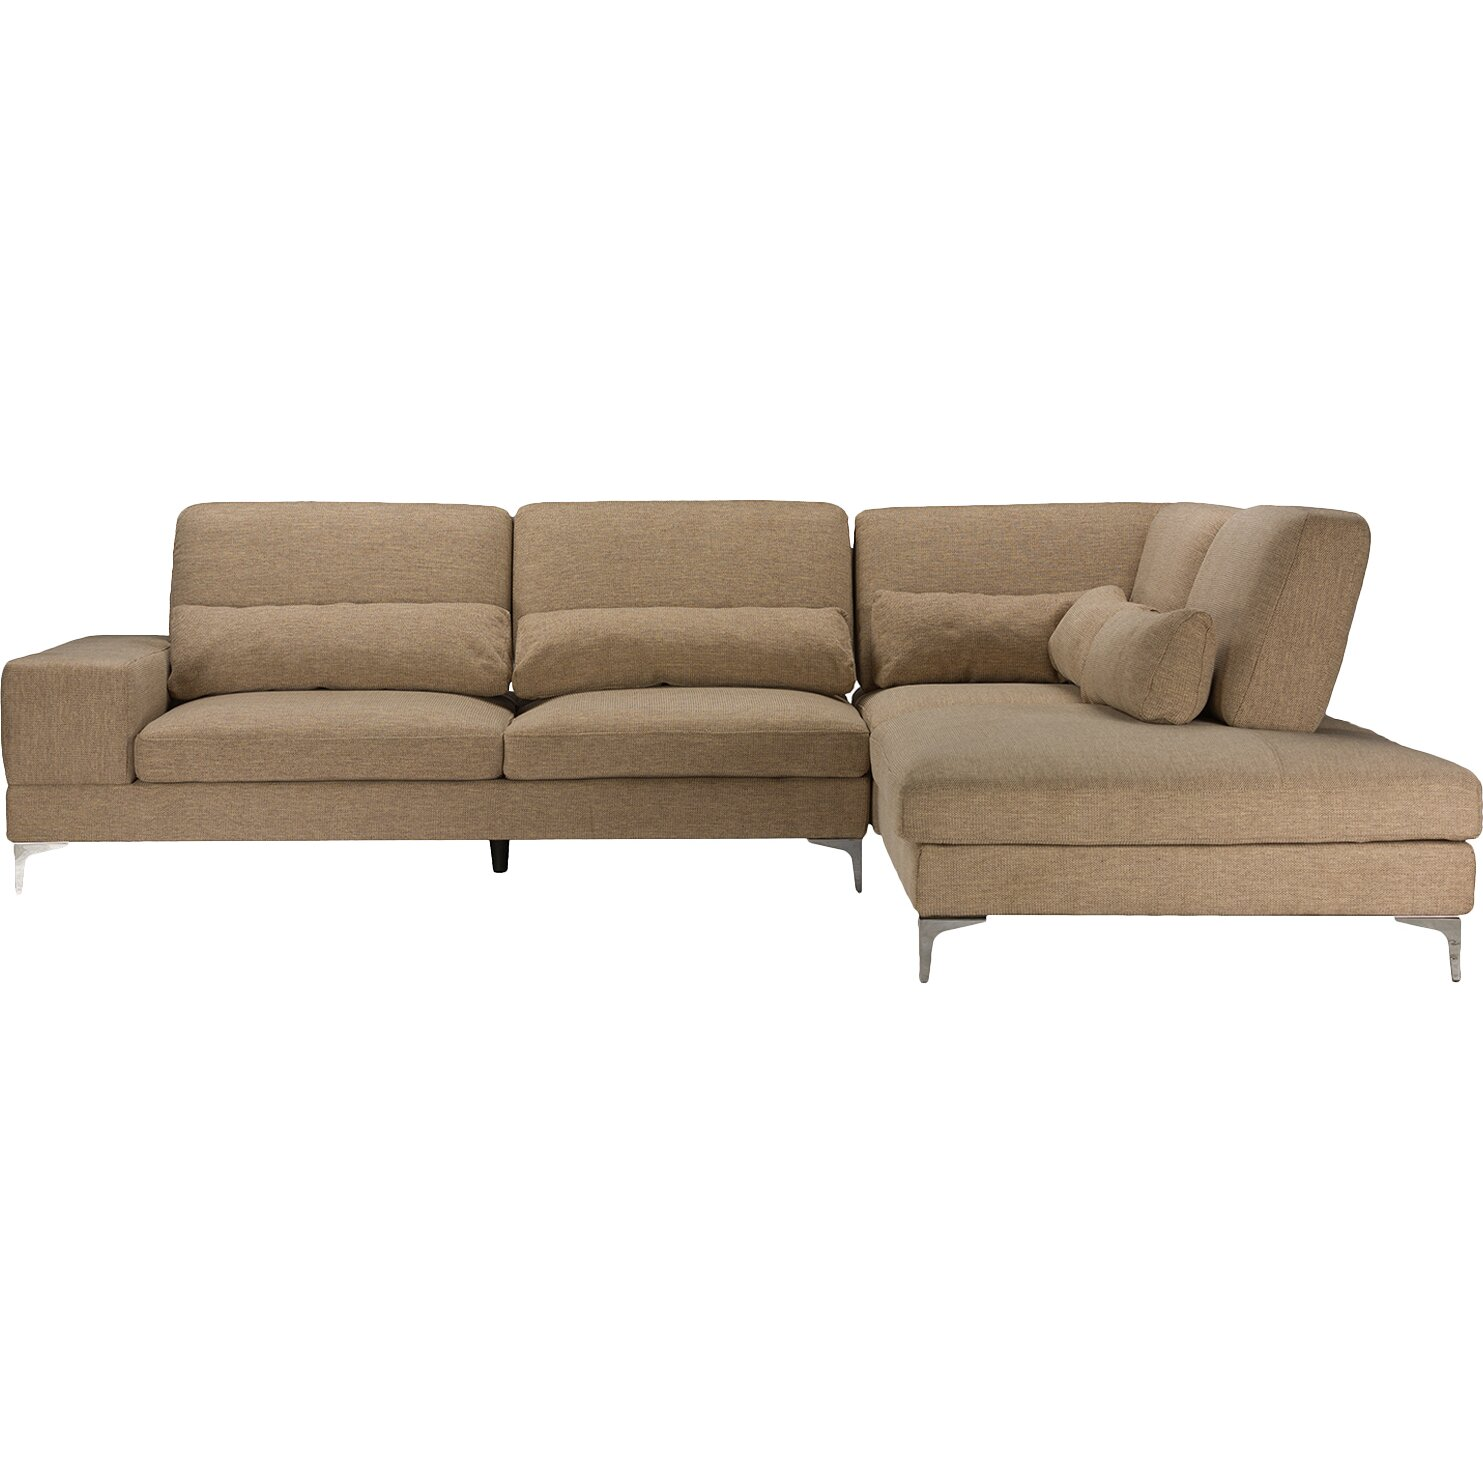 Wholesale Interiors Baxton Studio Sonia Sectional